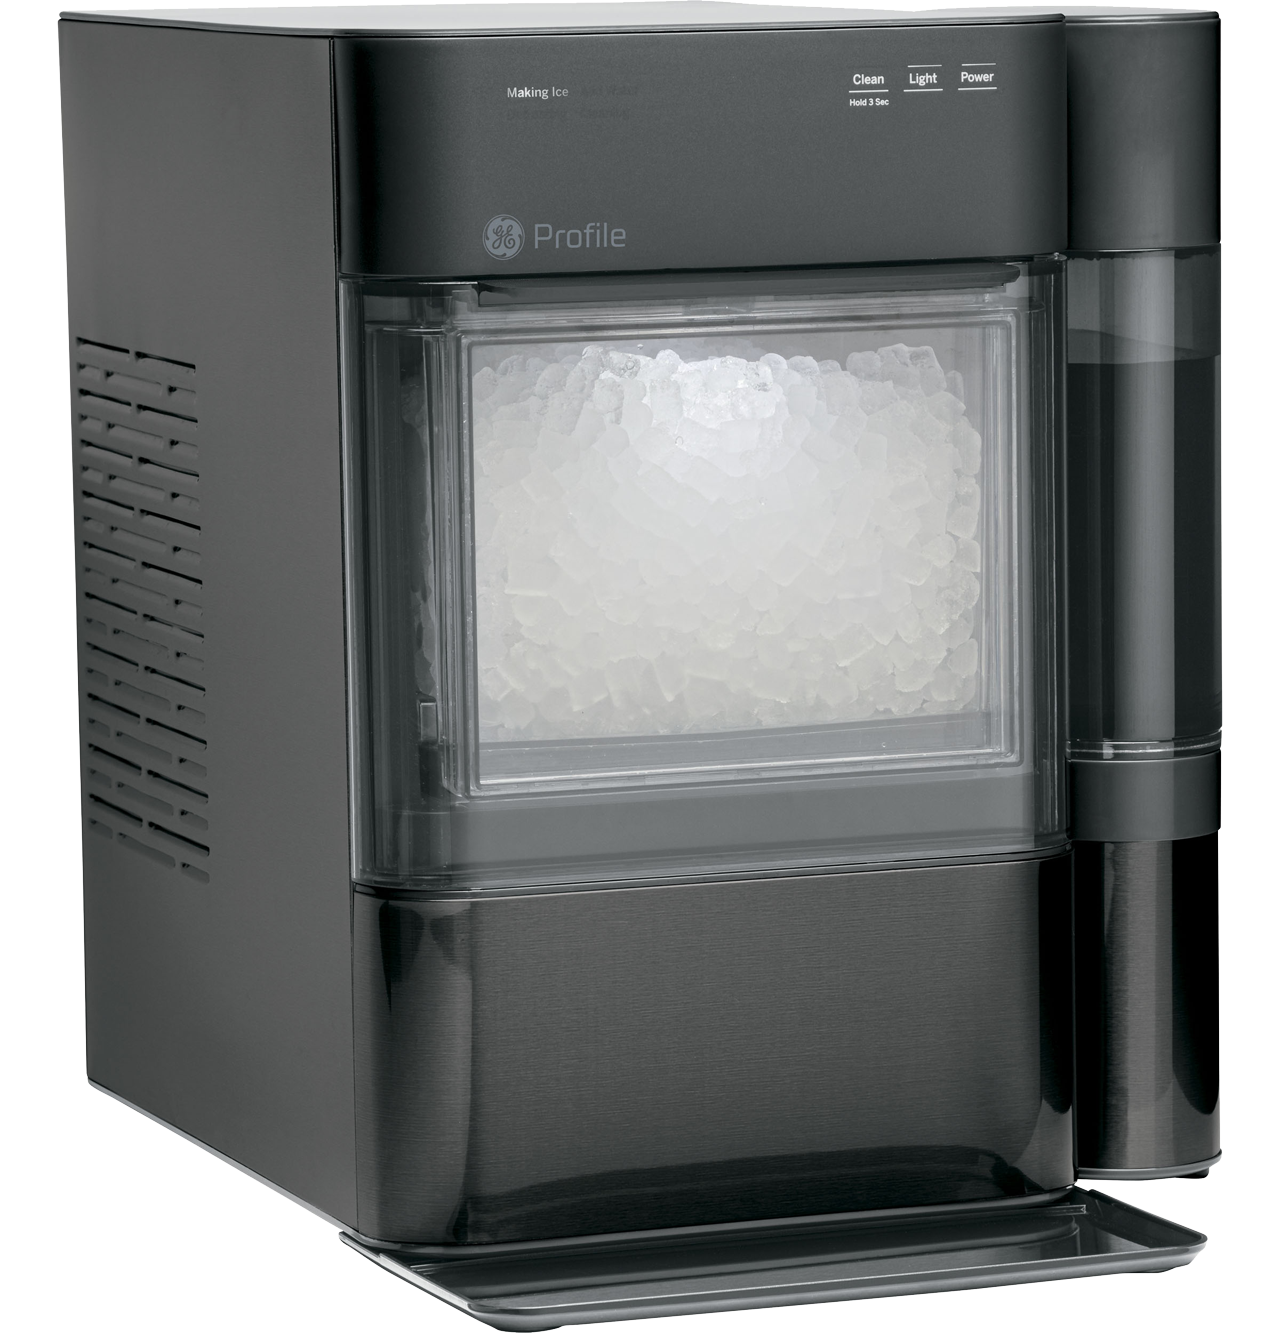 NEW GE Profile Opal 2.0 Nugget Ice Maker